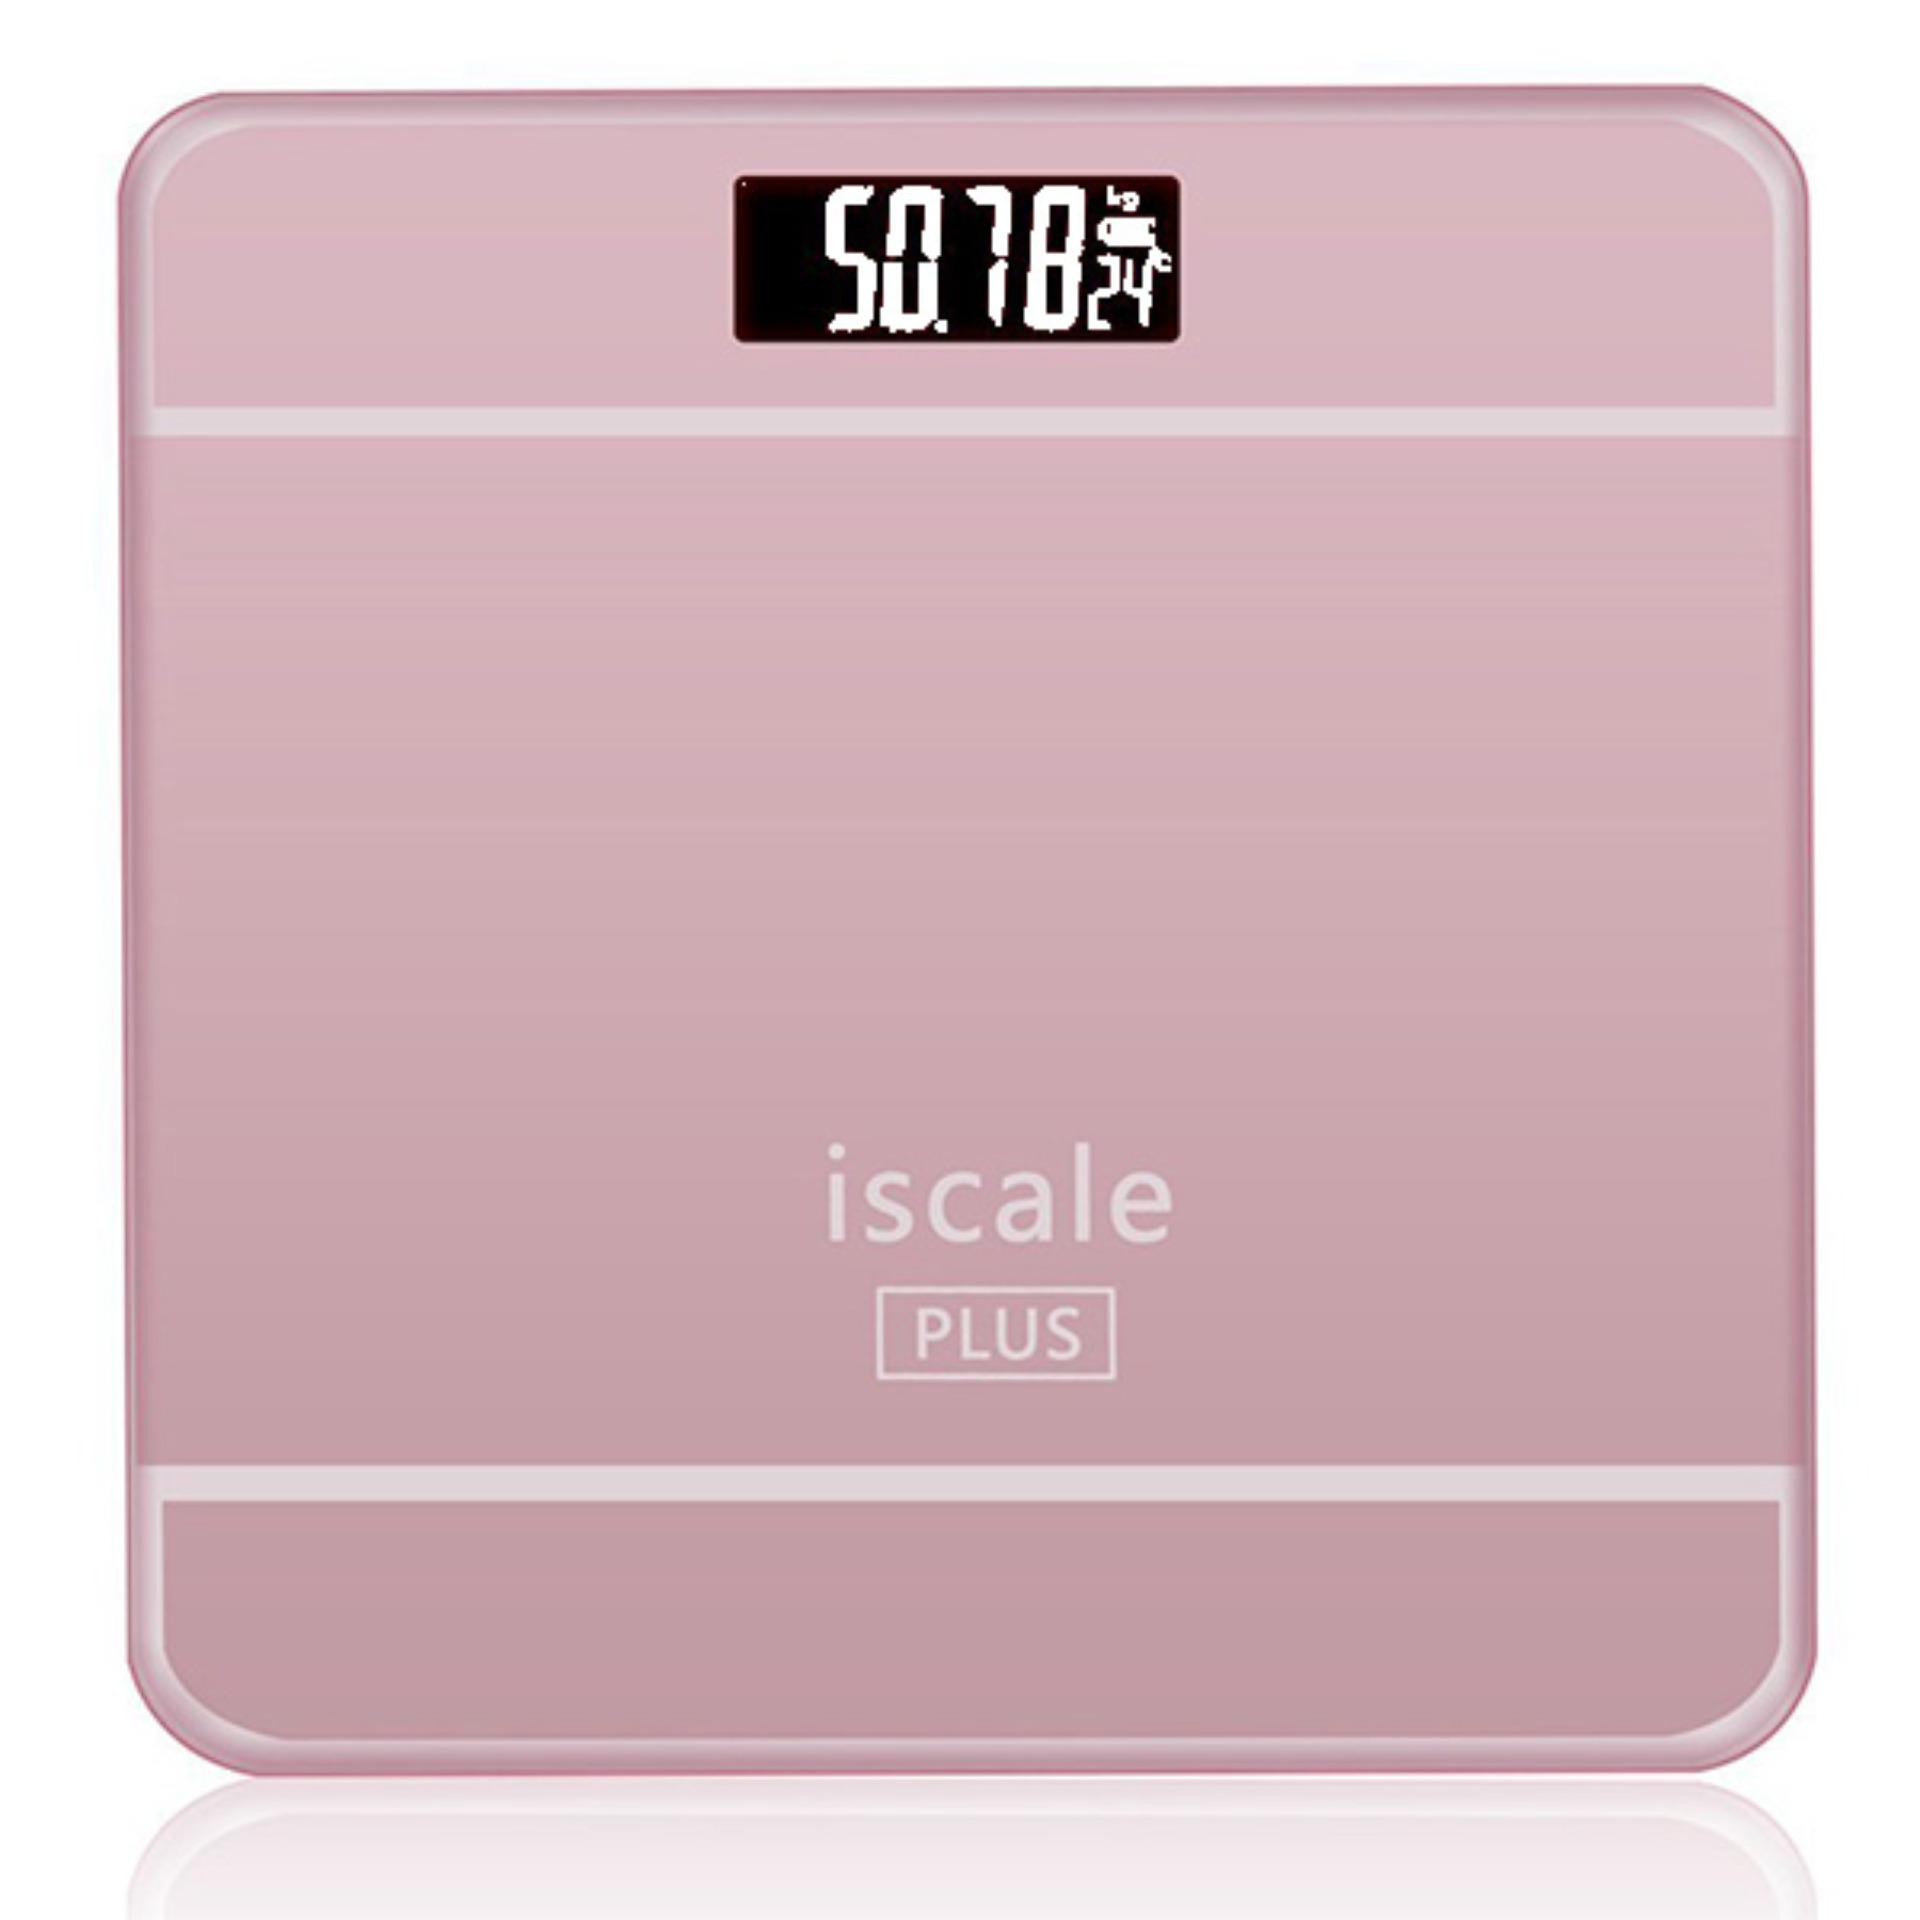 Beli Timbangan Badan Digital With Temperature Indicator Iscale Plus Pink Oem Asli